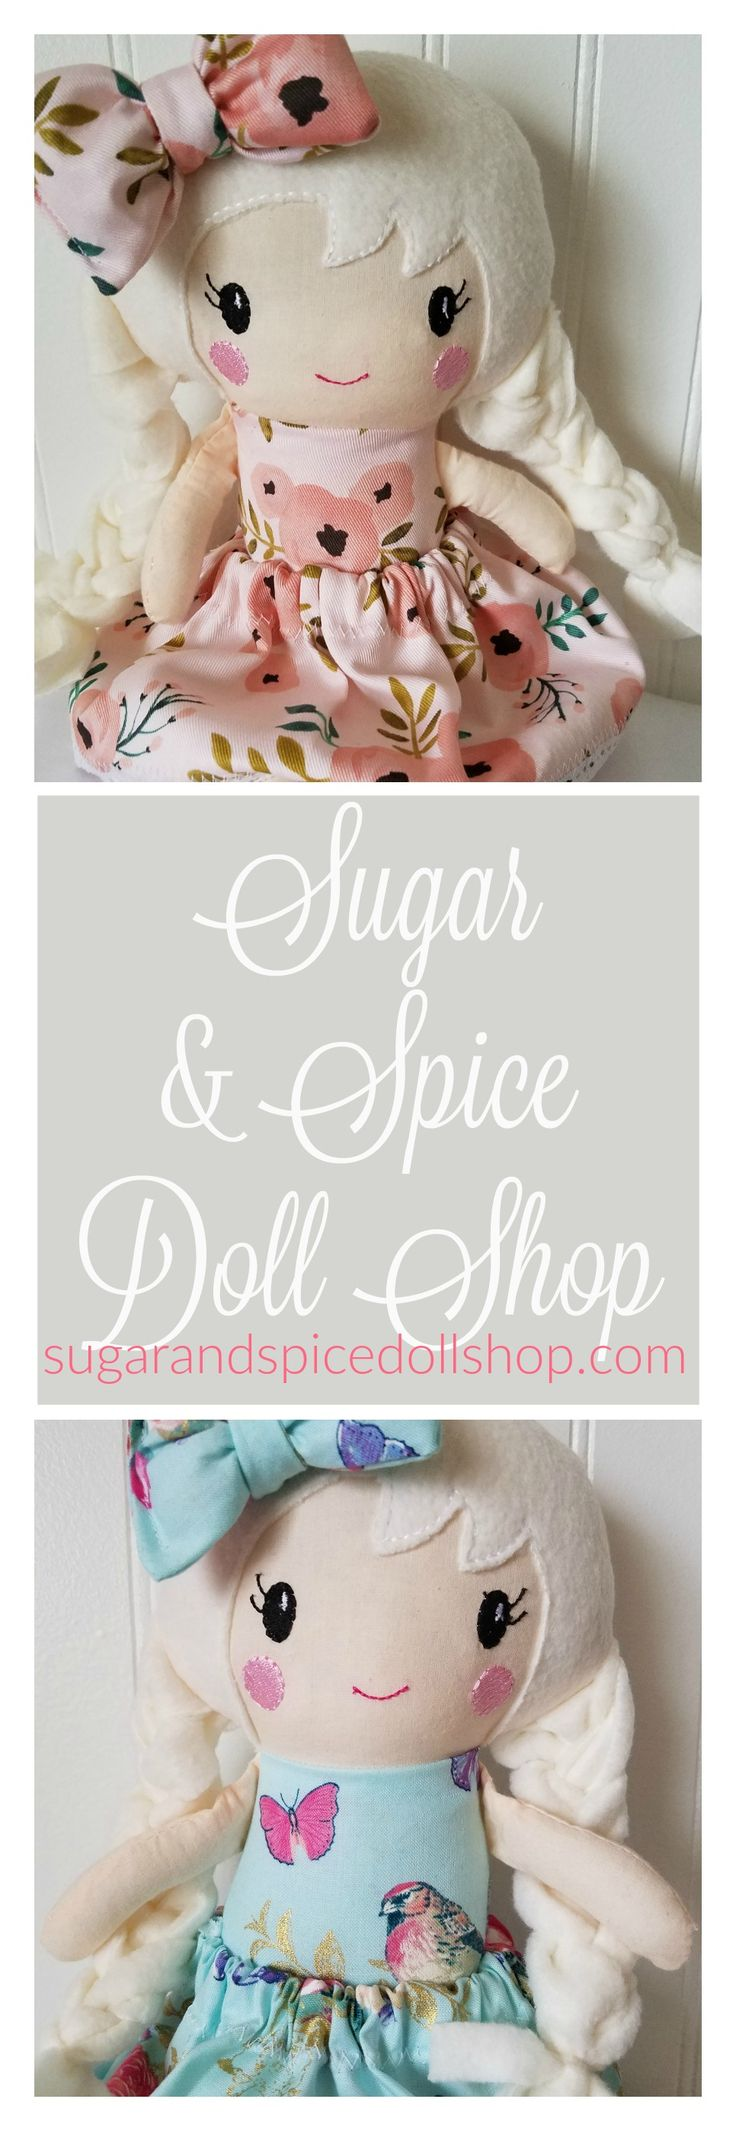 Beautifully Handcrafted Dolls, Clothes and Accessories including the Pinterest hit, Swaddle Babies!  www.sugarandspicedollshop.com